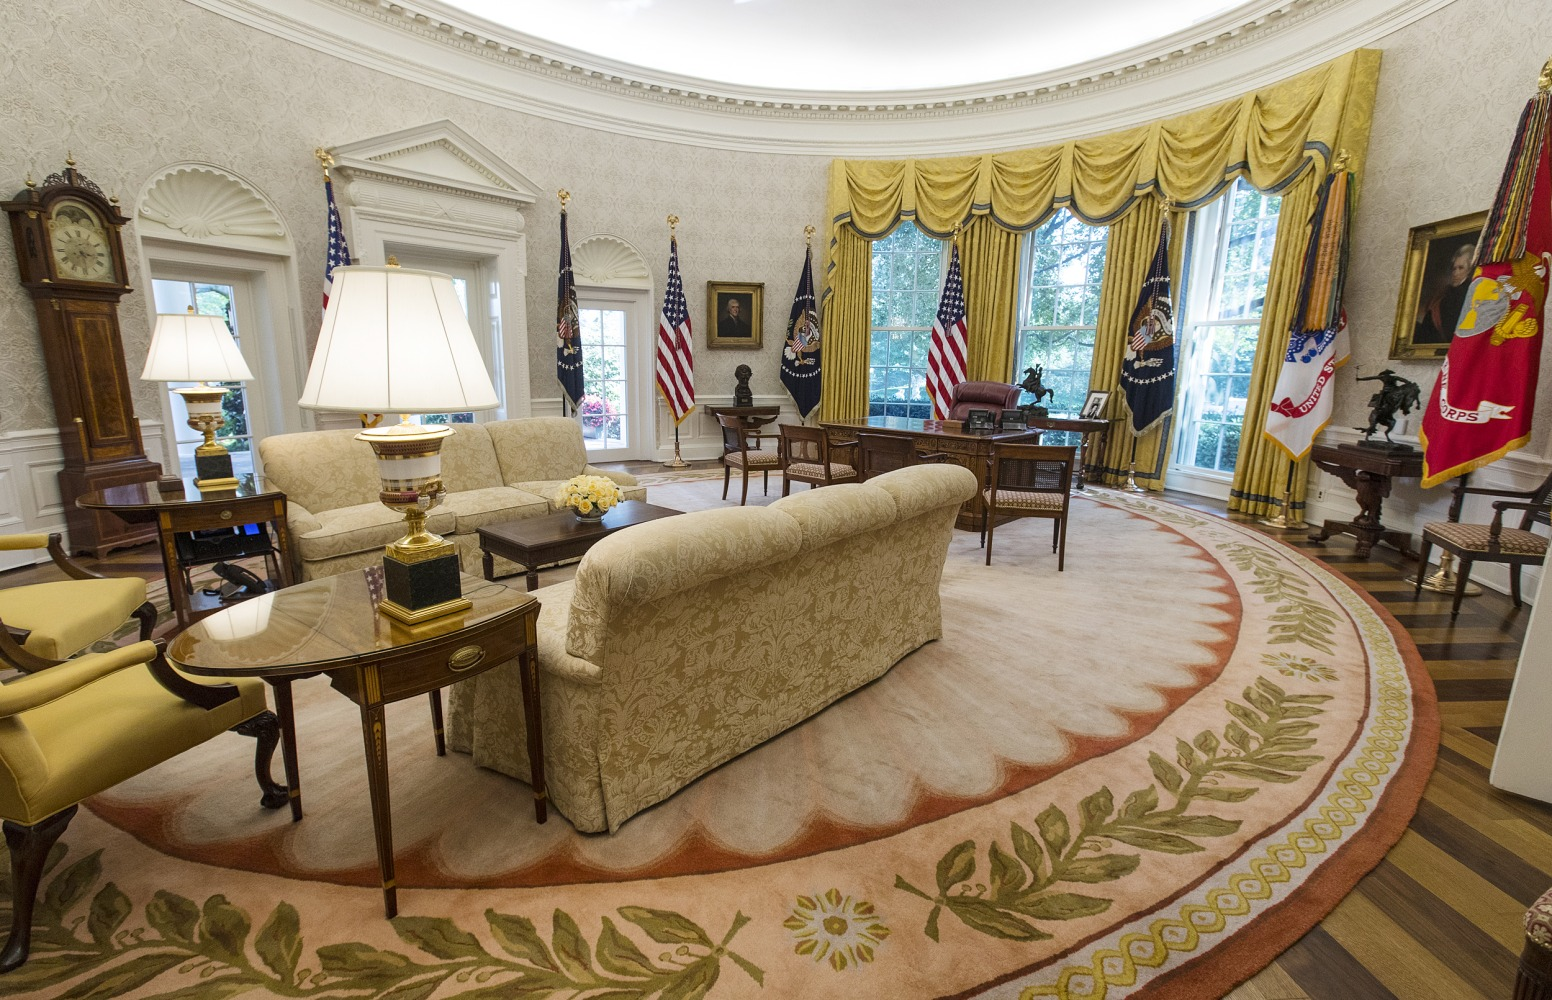 Trump spending million on presidential furniture redecorations nbc news Trump home bedroom furniture